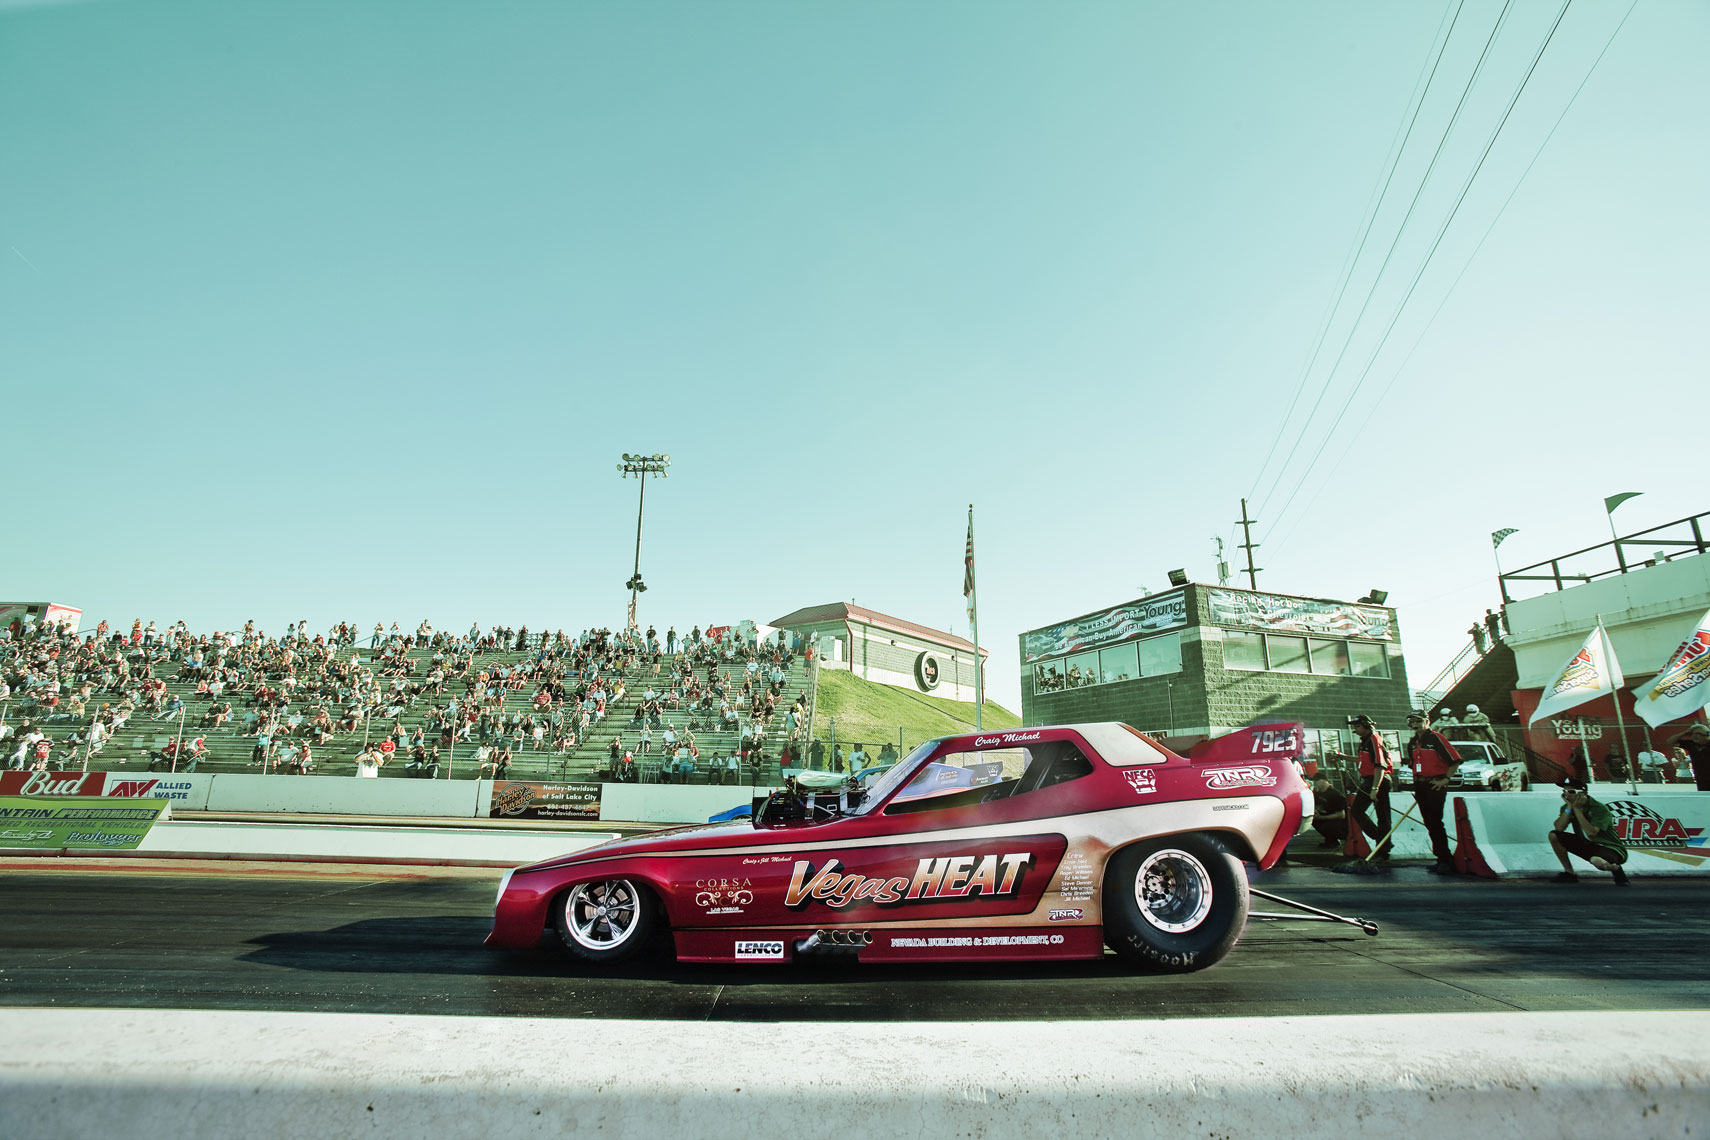 Drag Racing | Skylar Nielsen Photography